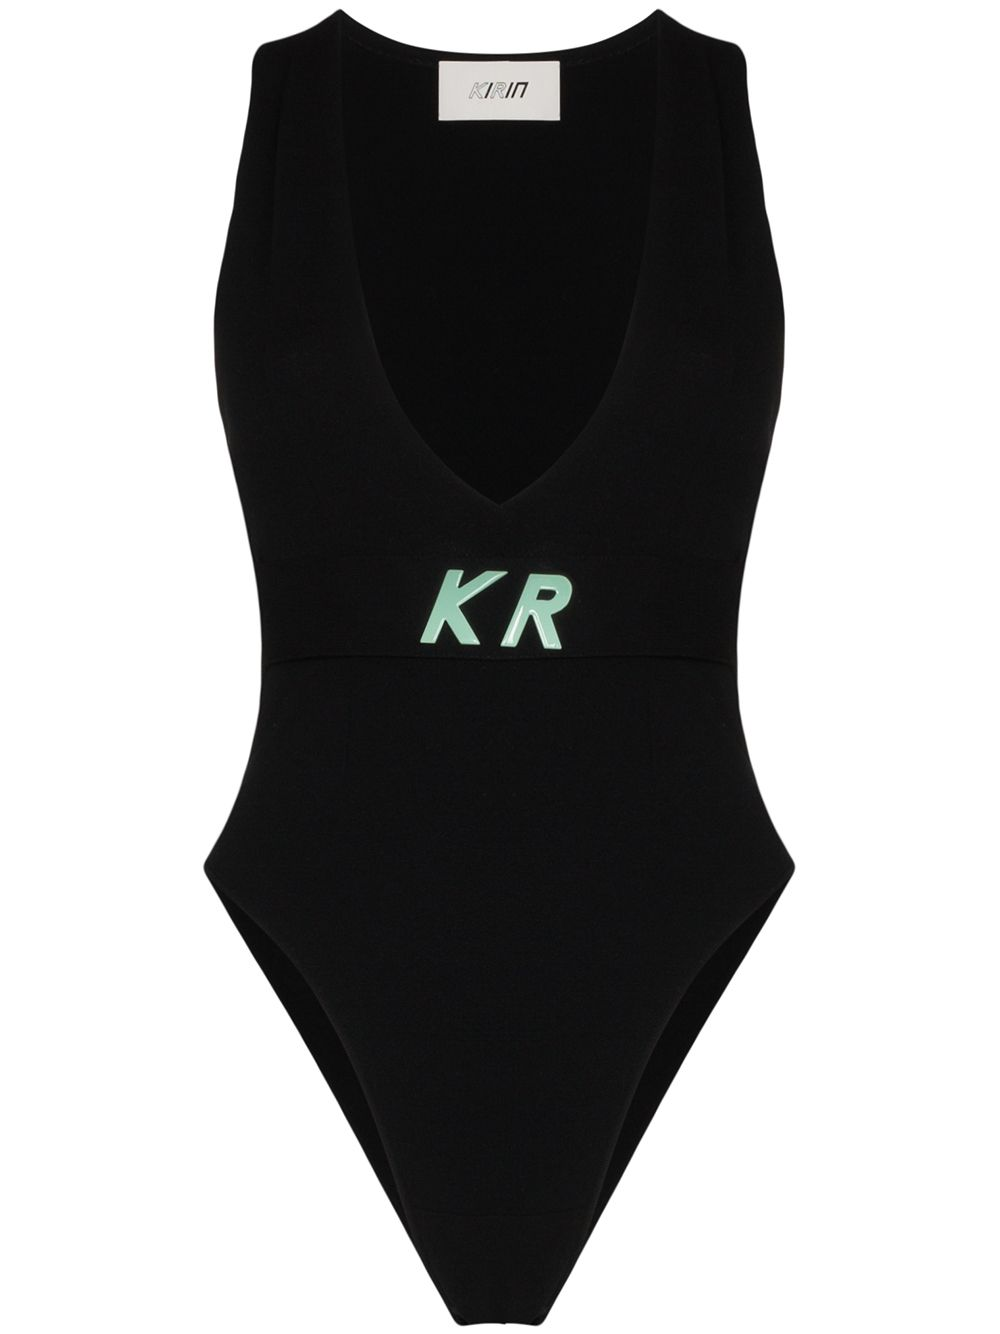 KIRIN logo detail knit bodysuit black - Maison De Fashion